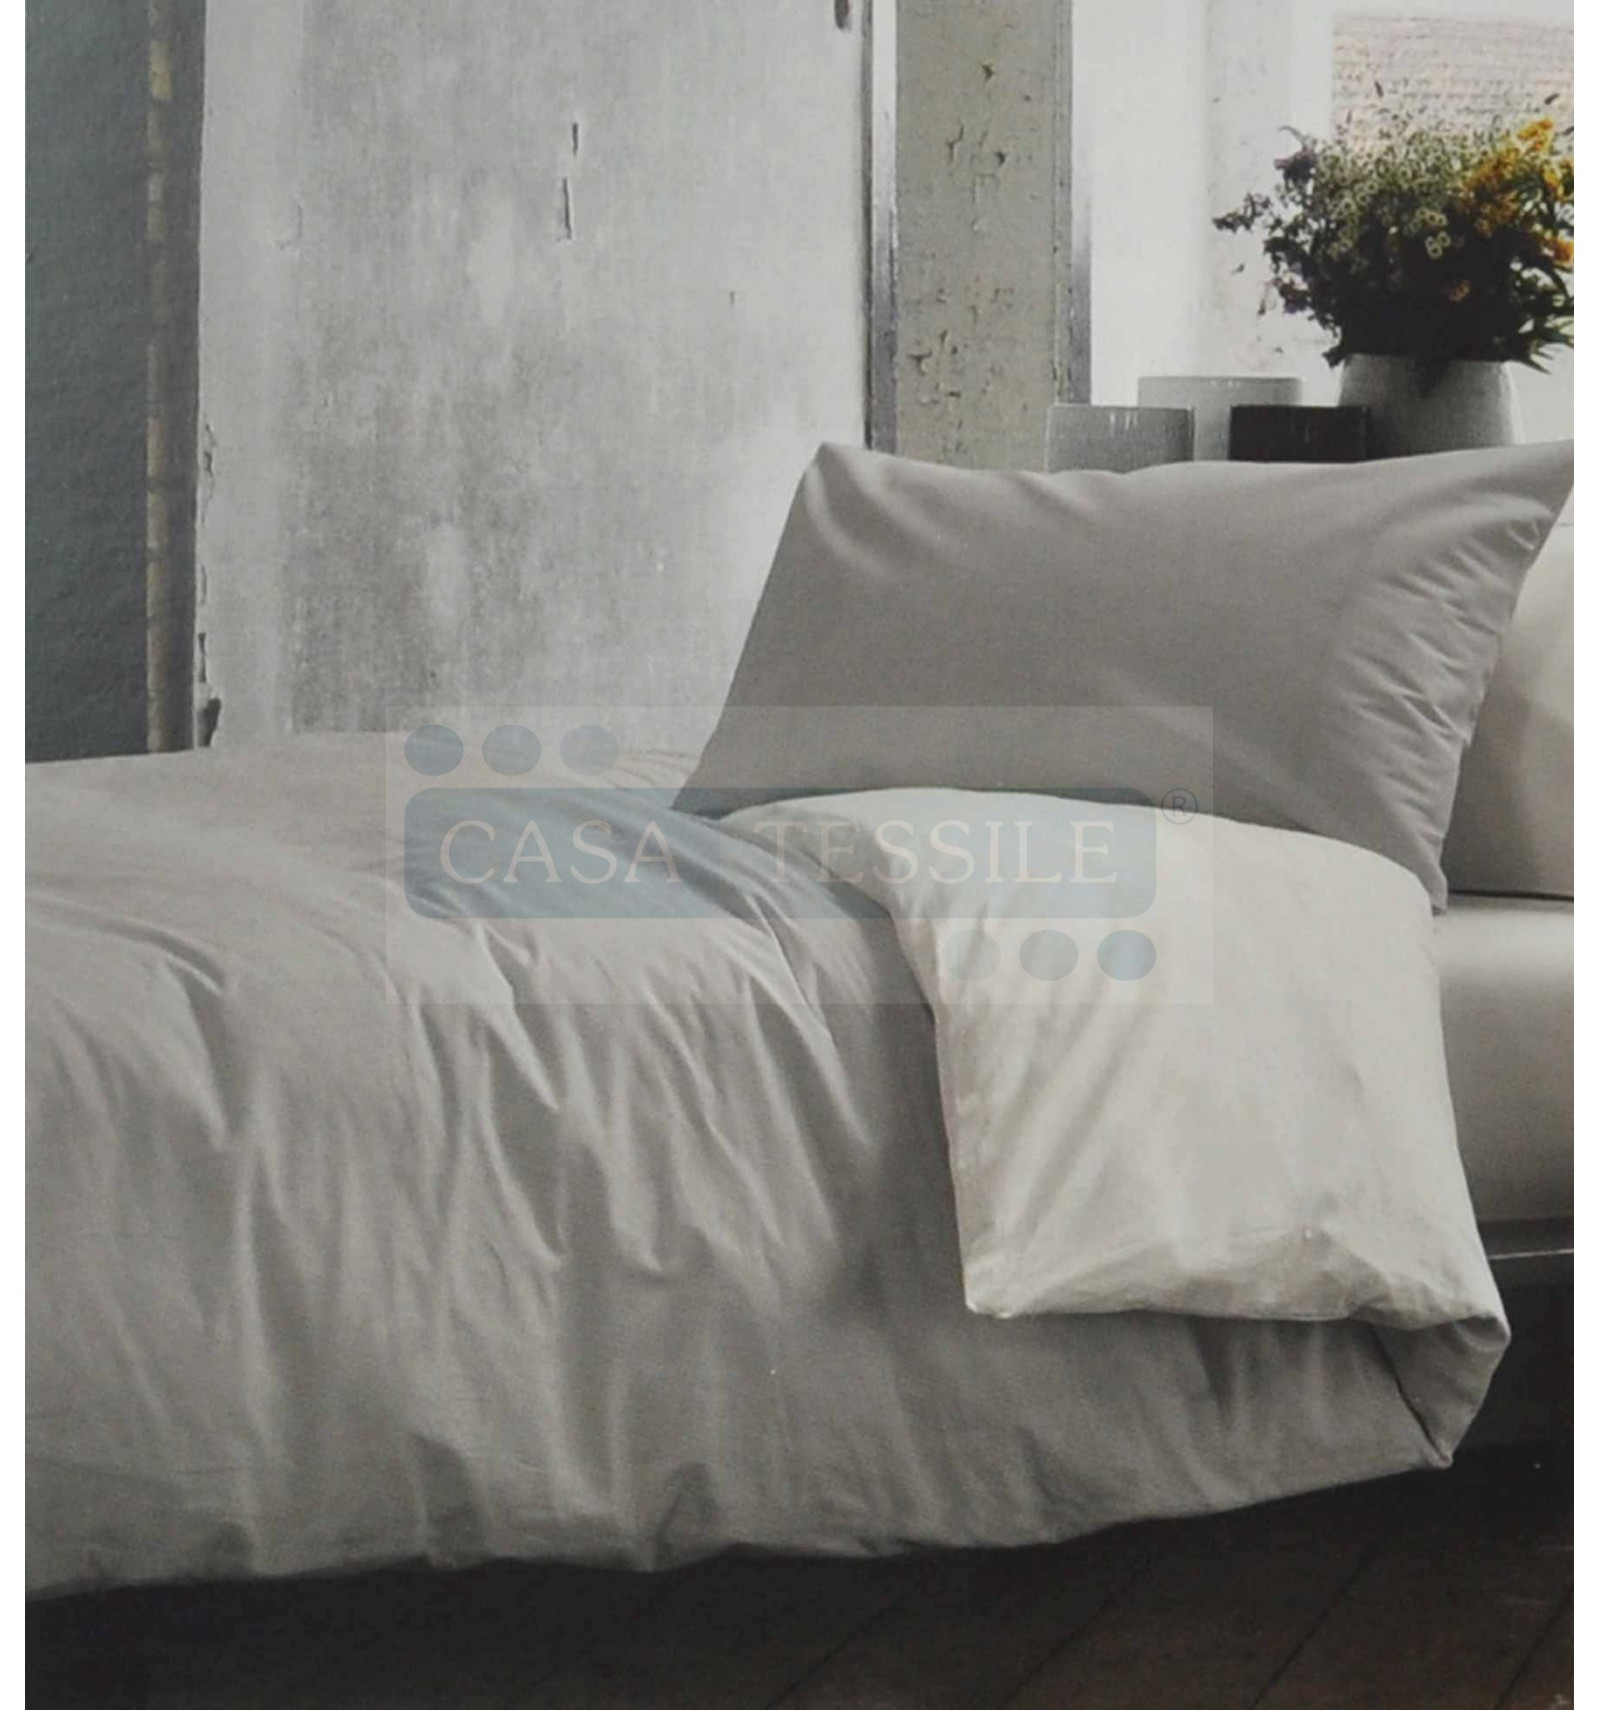 Copripiumino 150 X 200.Class Friends Single Duvet Cover Cm 150 X 200 Casa Tessile